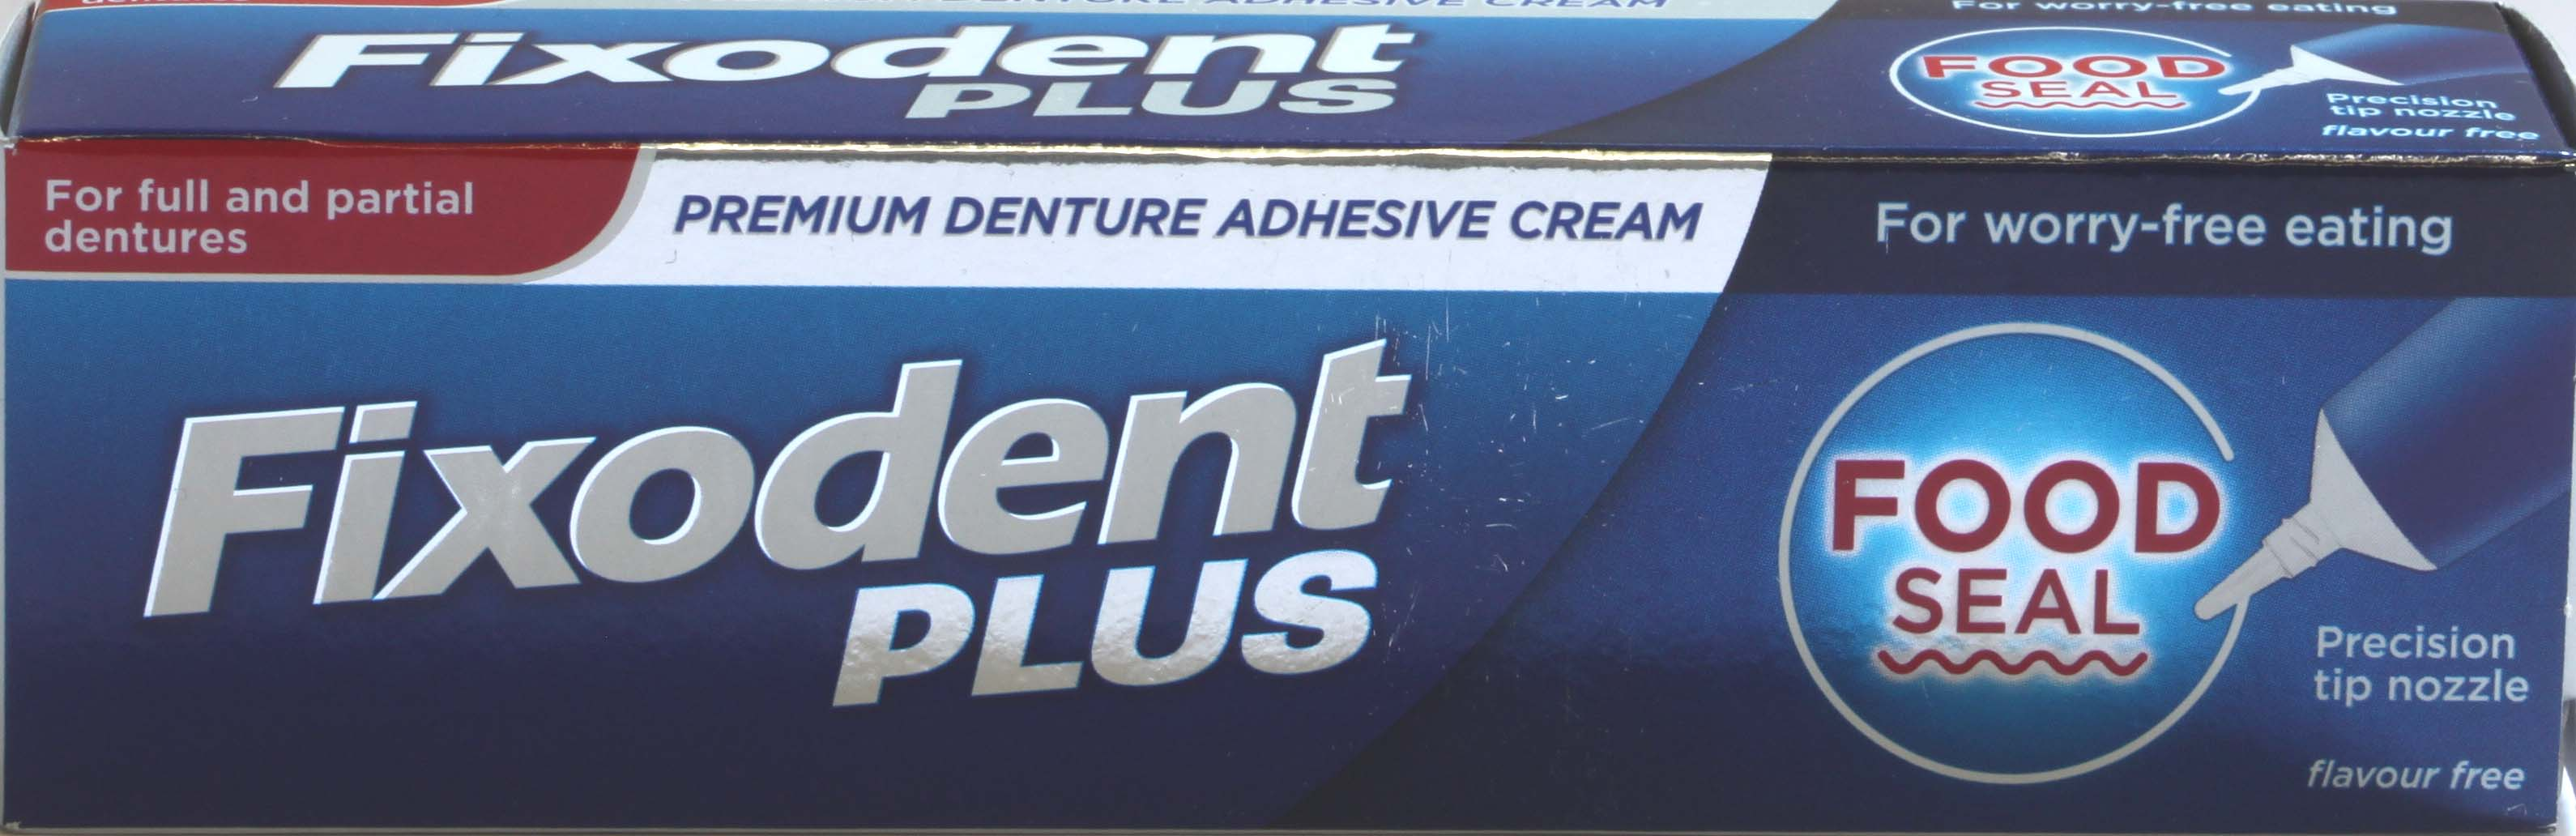 Fixodent Plus Food Seal Denture Adhesive - 40g